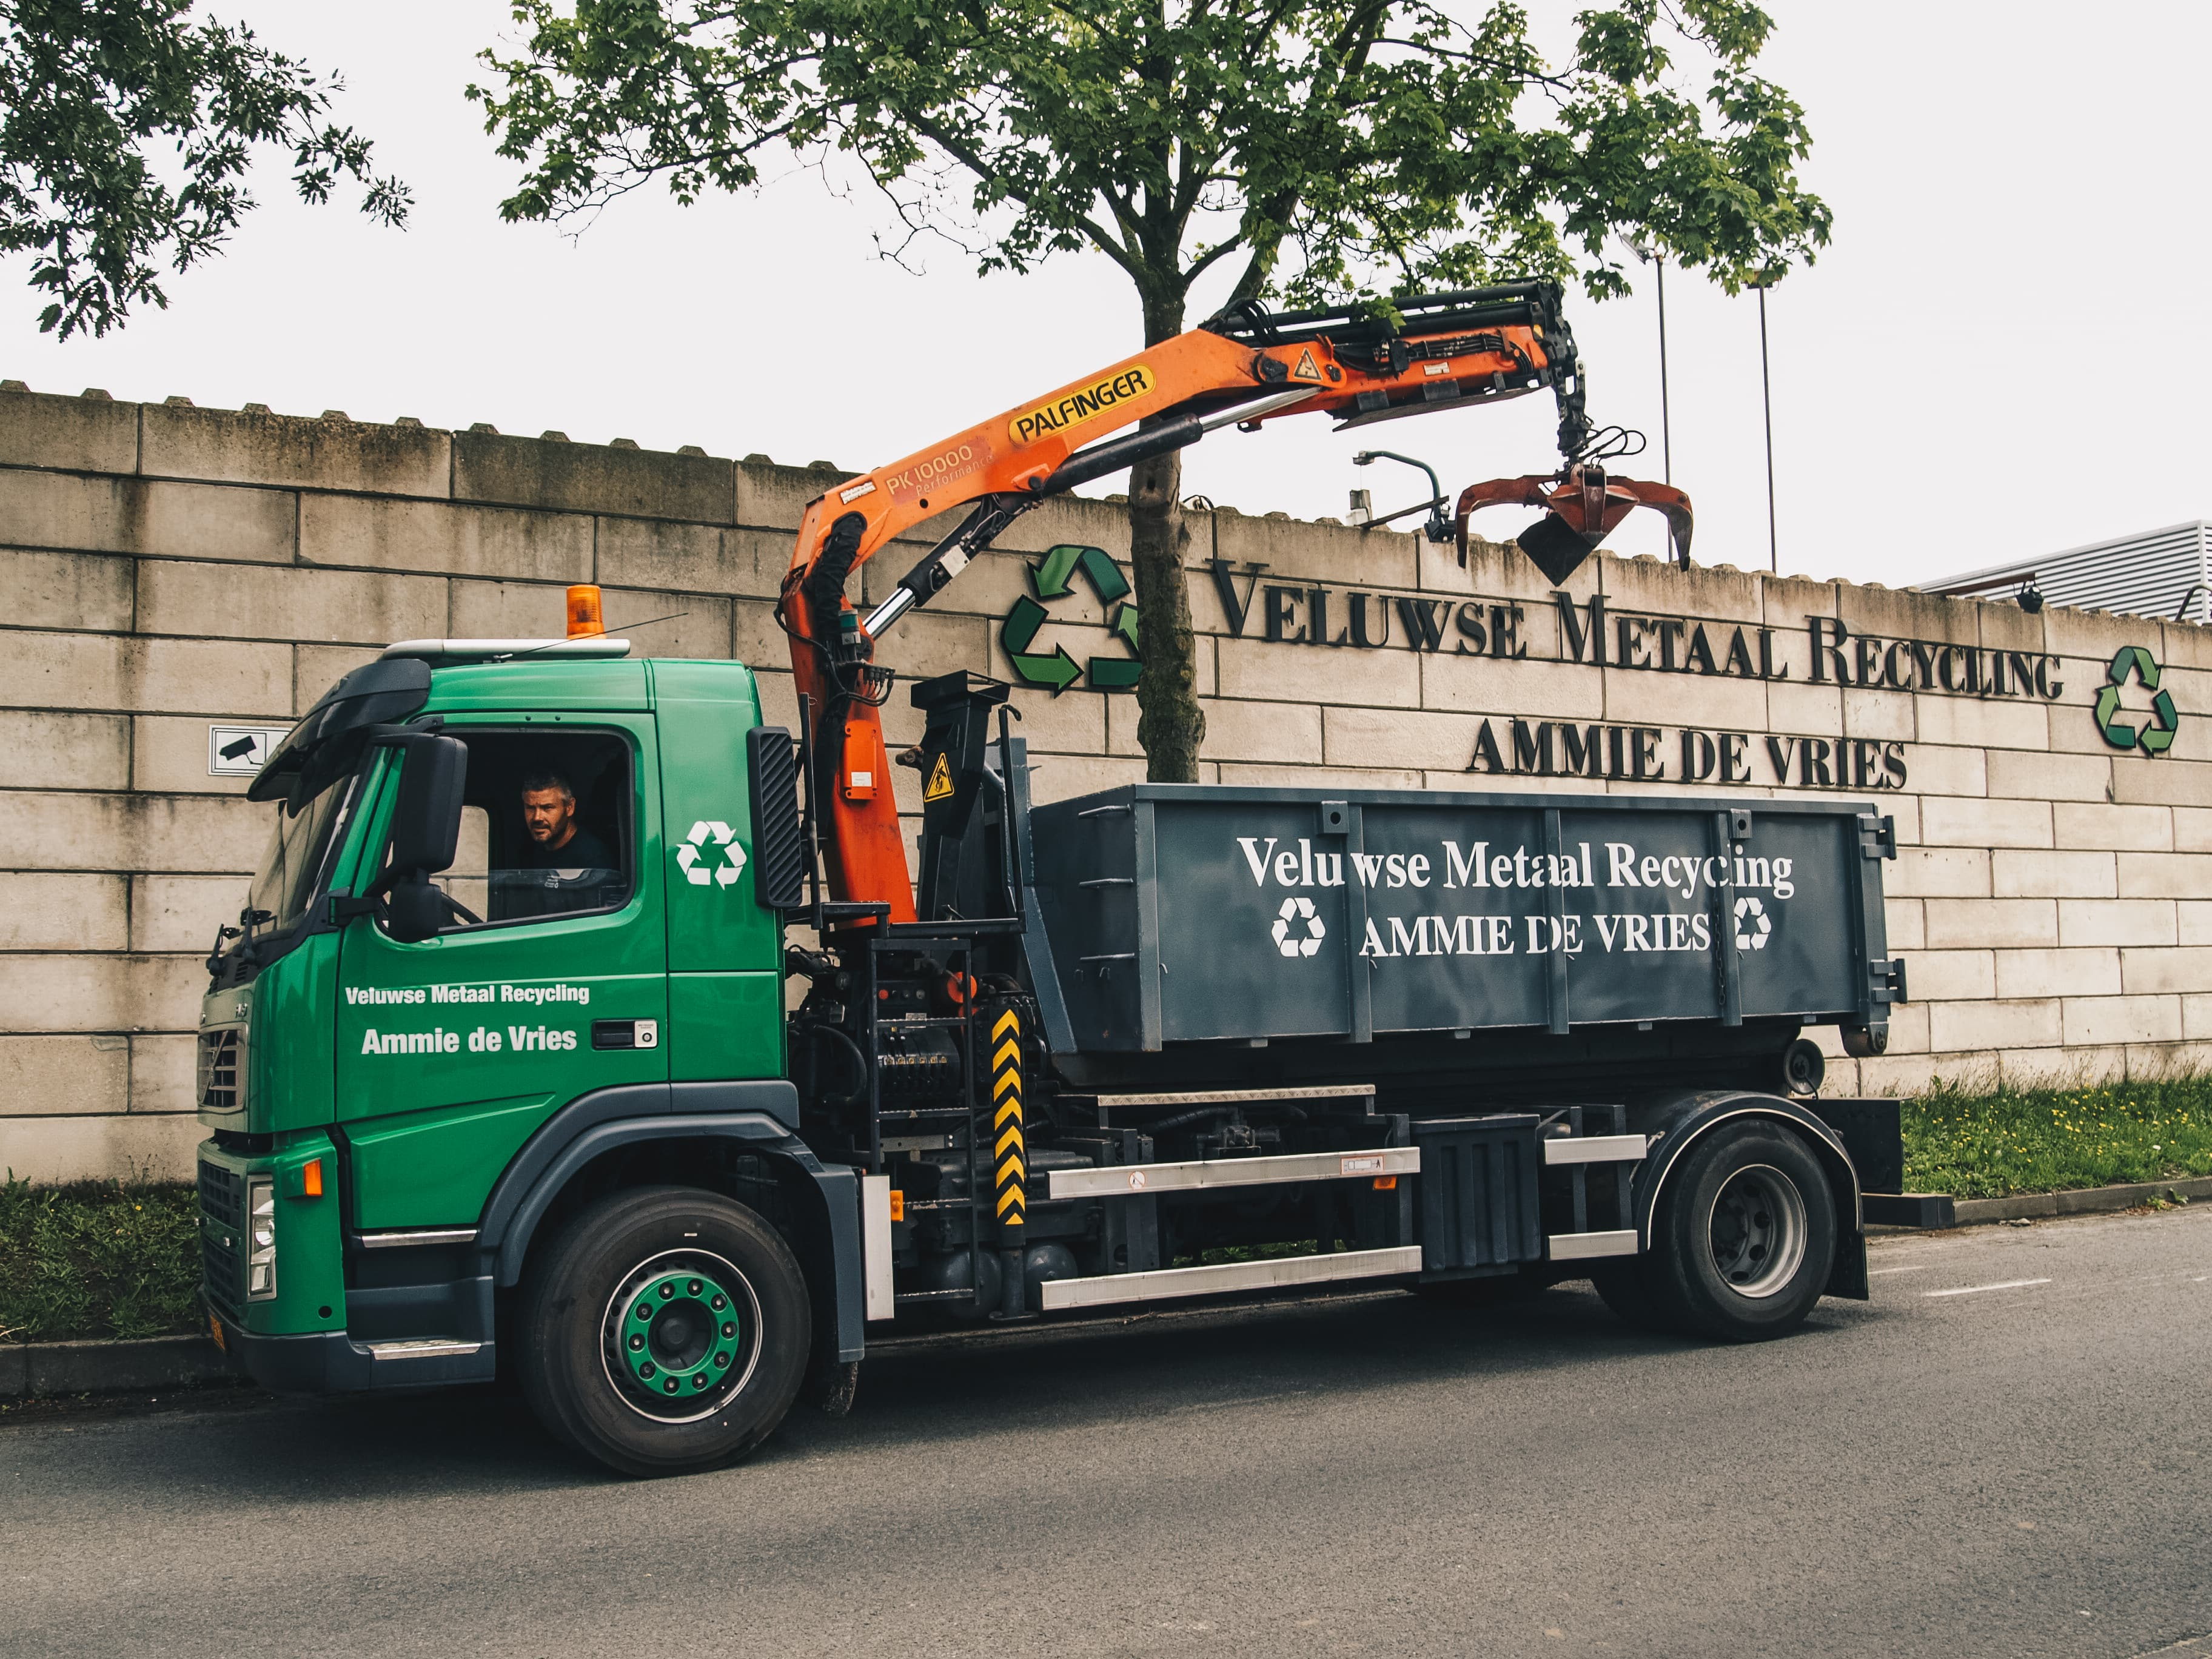 Veluwse Metaal Recycling Ammie de Vries | Containers